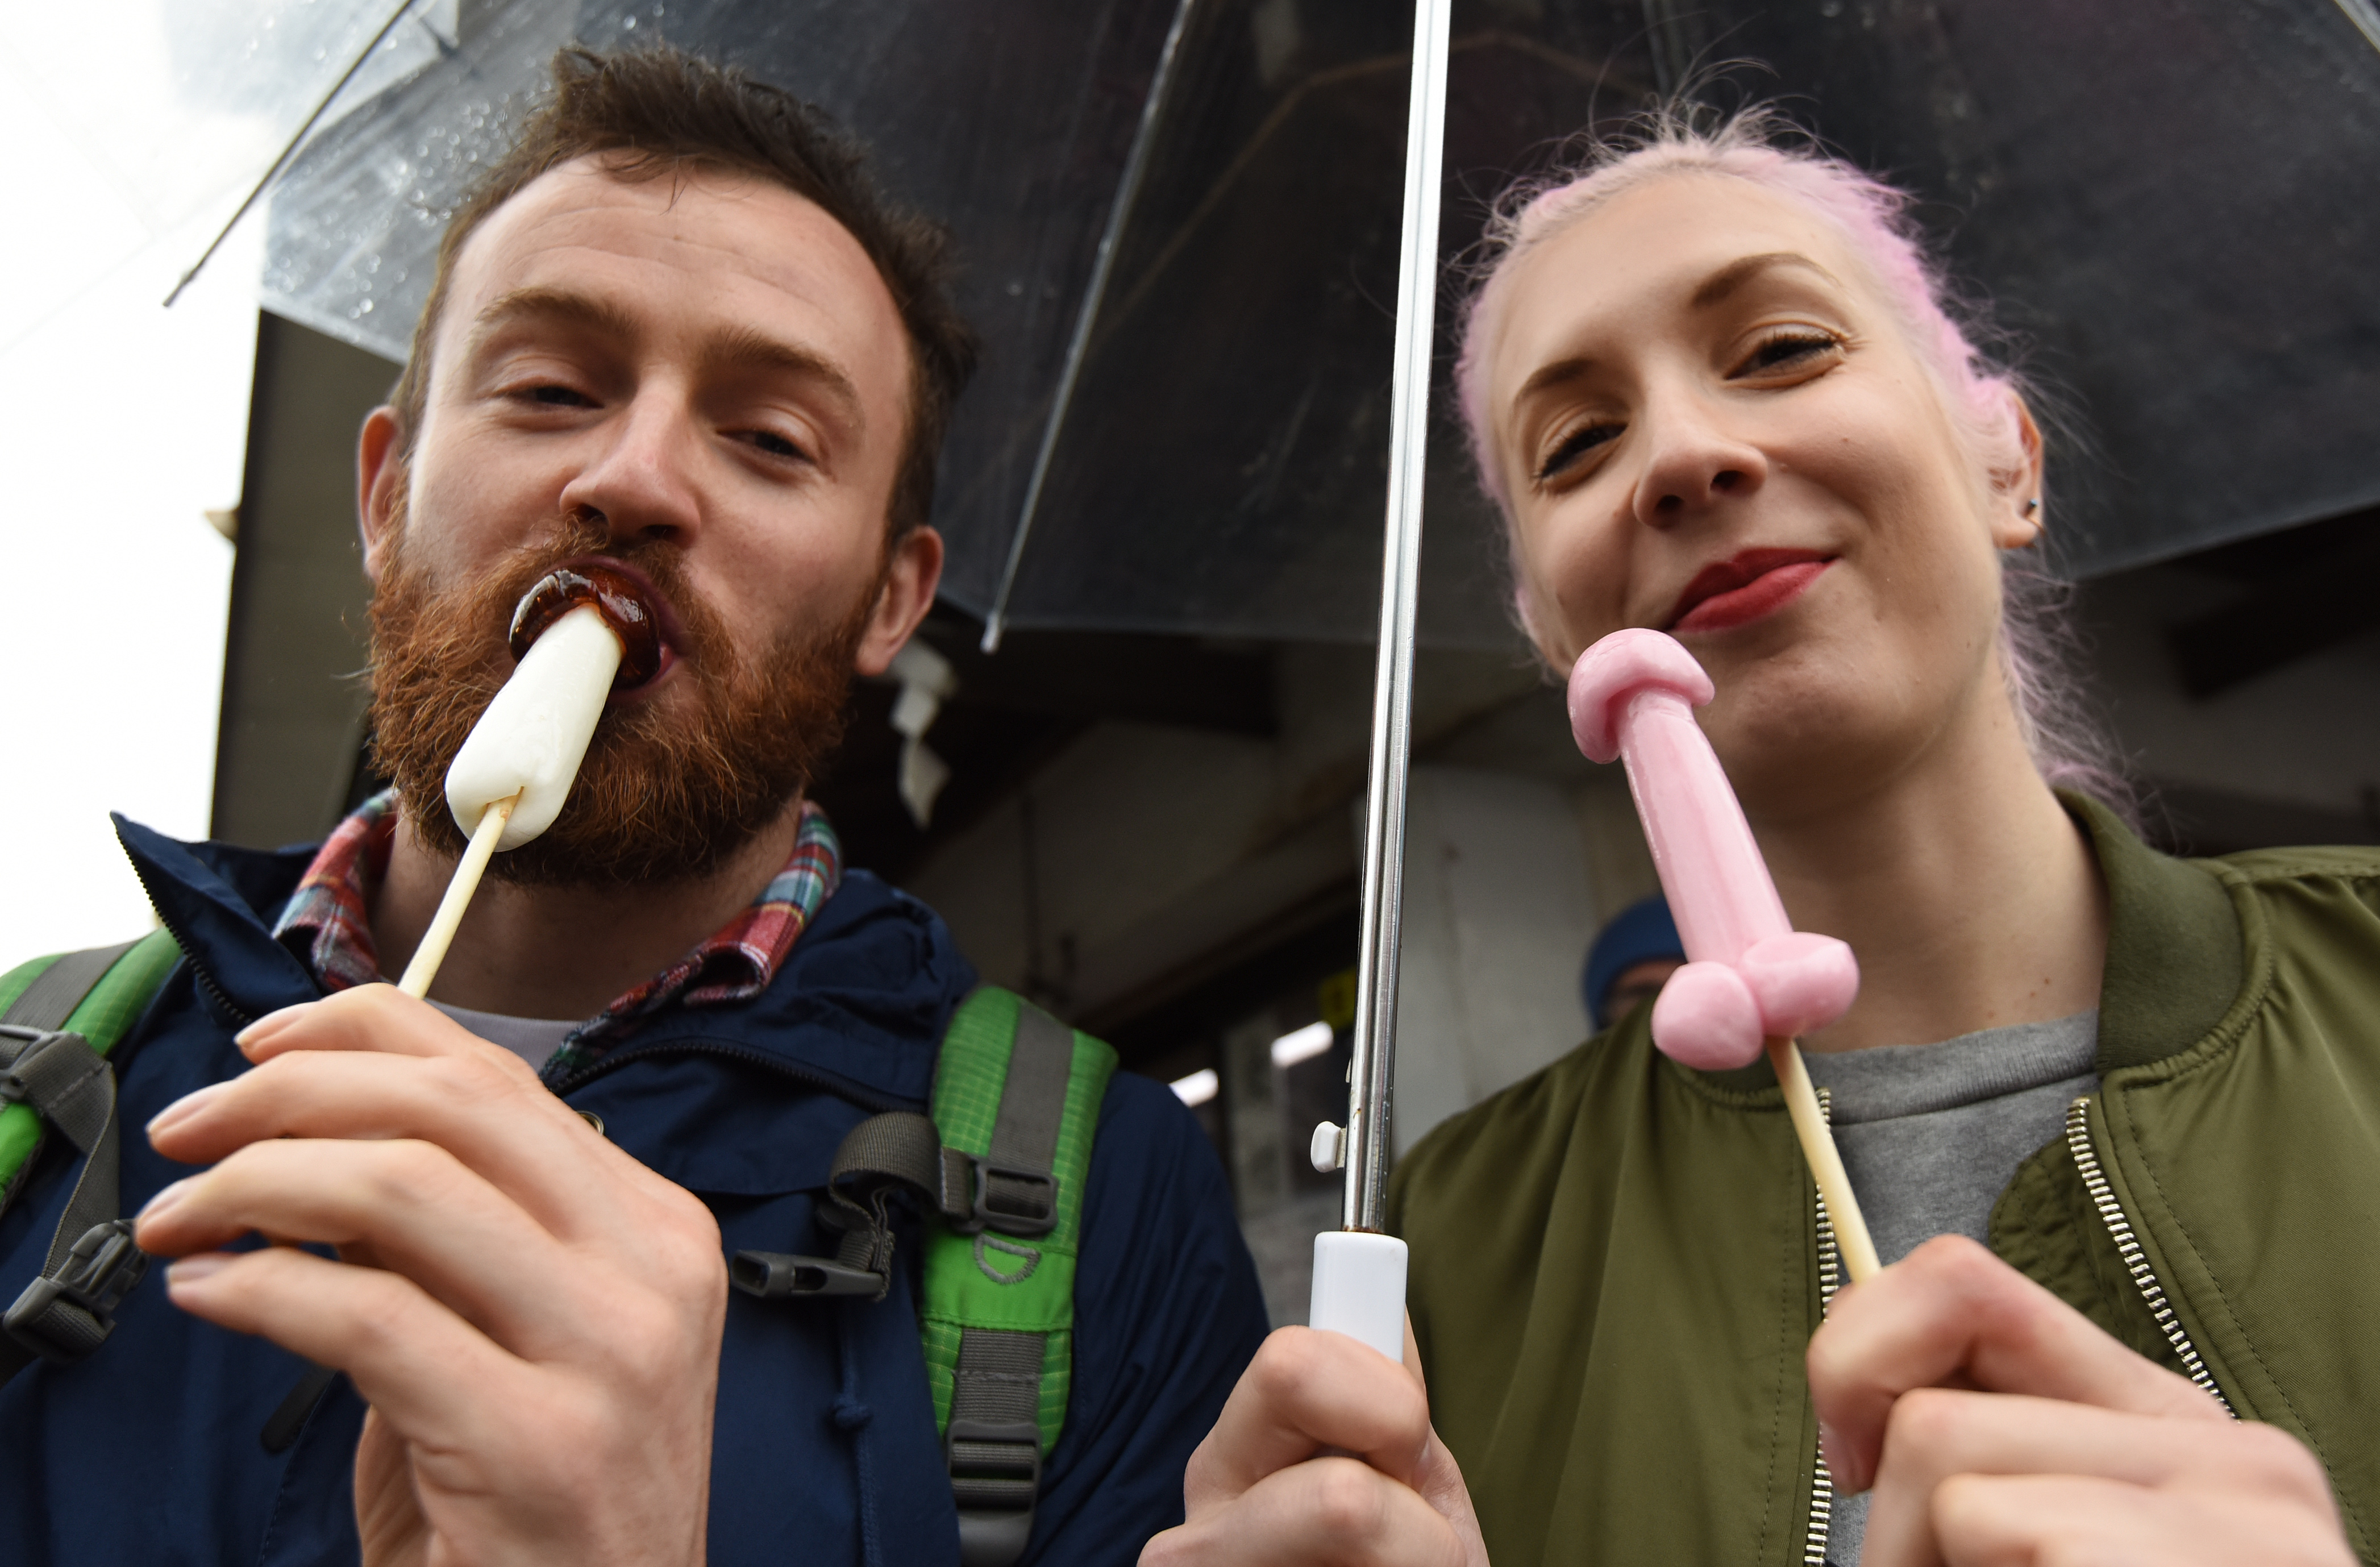 A couple hold candy in the shape of phalluses at the Wakamiya Hachimangu Shrine during the Kanamara Festival in Kawasaki, a suburb of Tokyo on April 3, 2016. More than 20,000 people gathered to enjoy the annual festival which Shinto believers carry giant phalluses through the streets. / AFP / TORU YAMANAKA